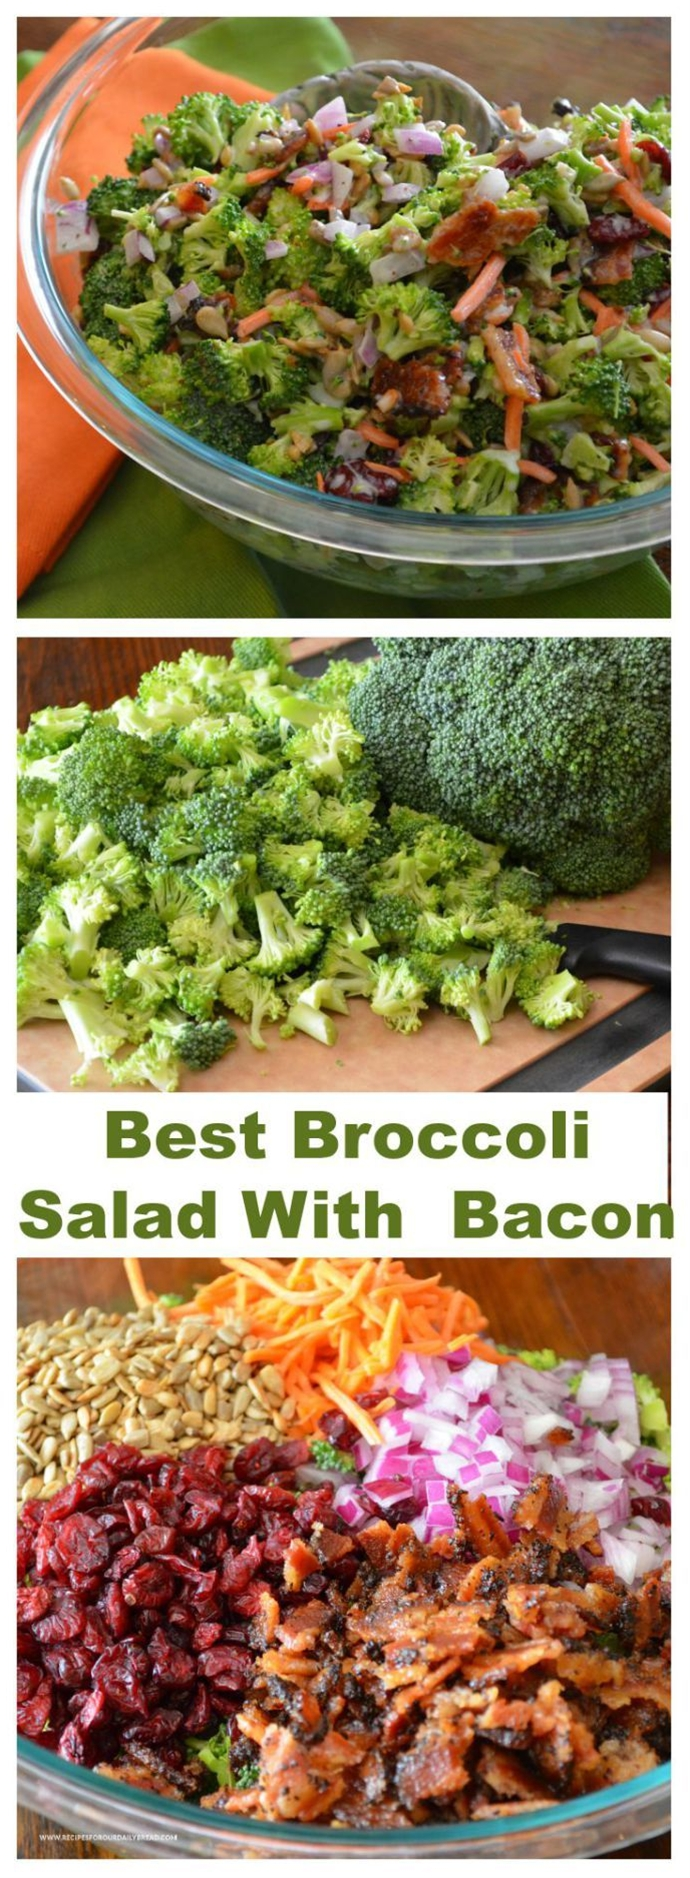 Broccoli Salad with Bacon Recipe - I need to get Lesley's receipe...she makes the best.